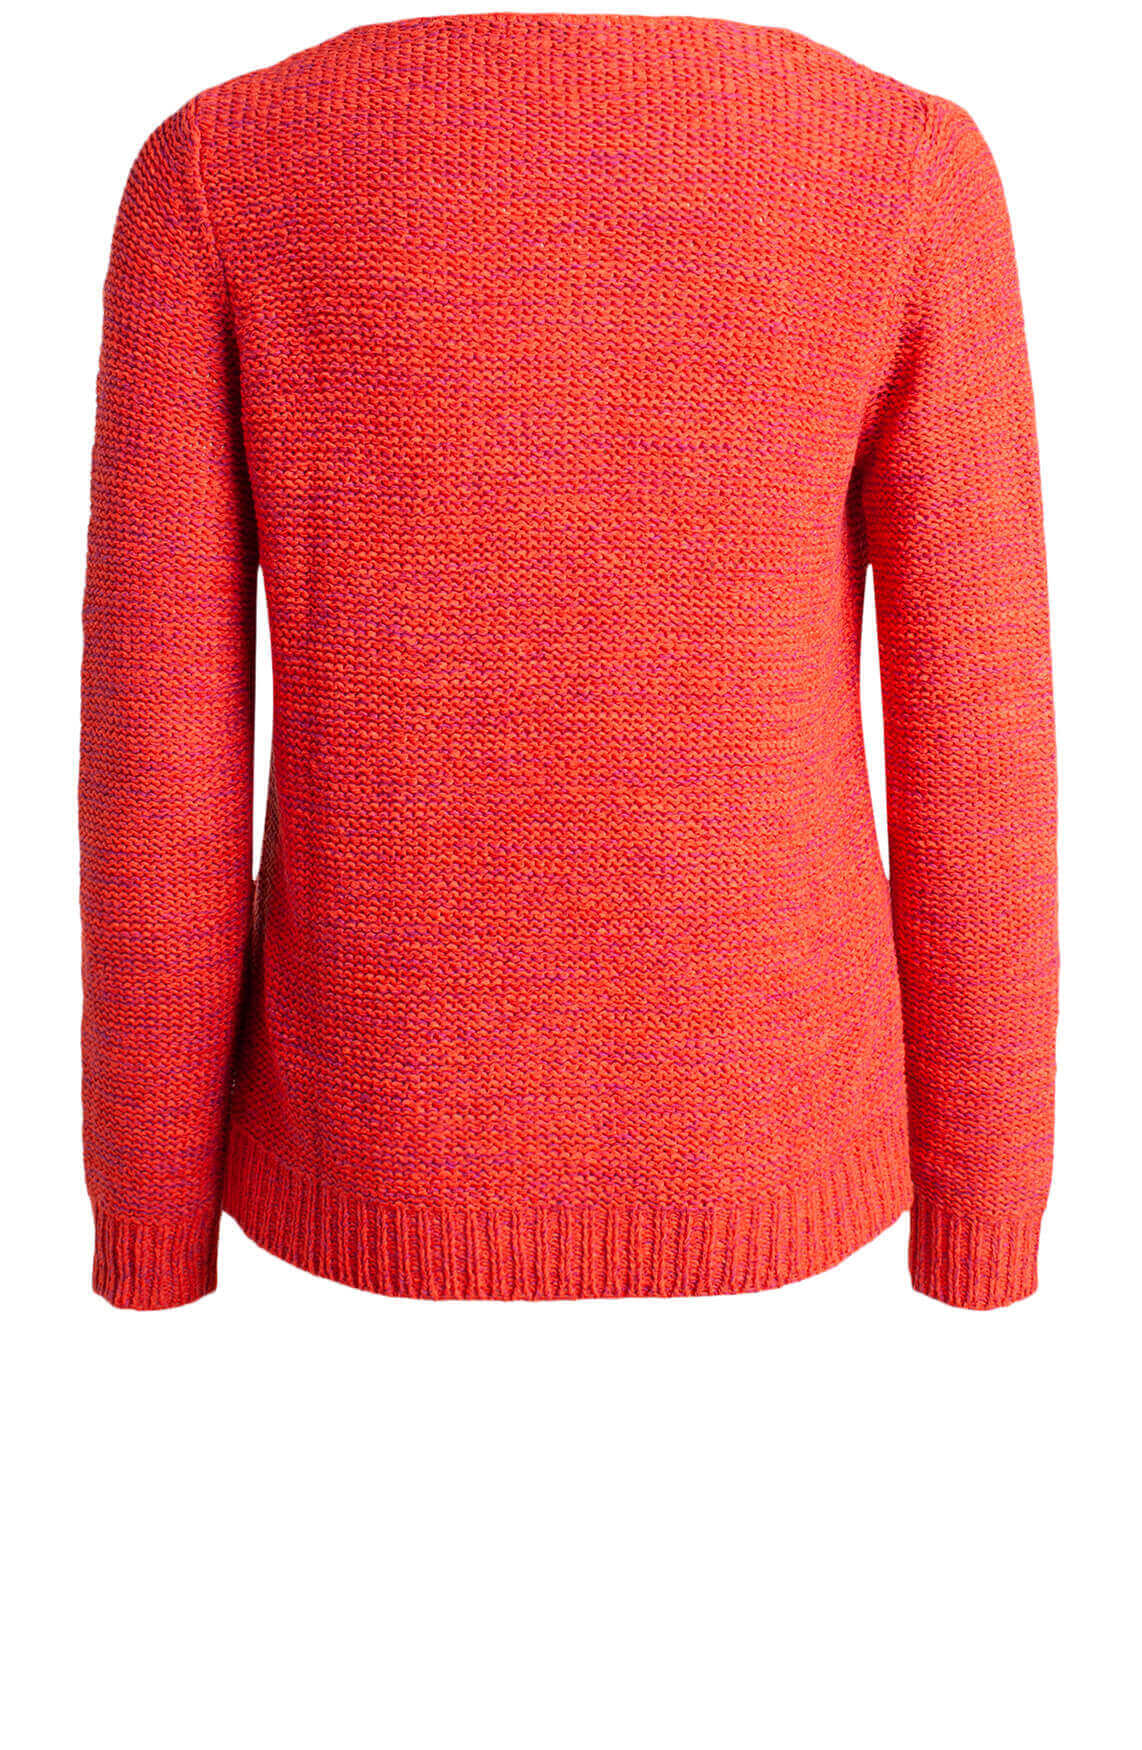 Anna Dames Pullover in bandgaren Rood